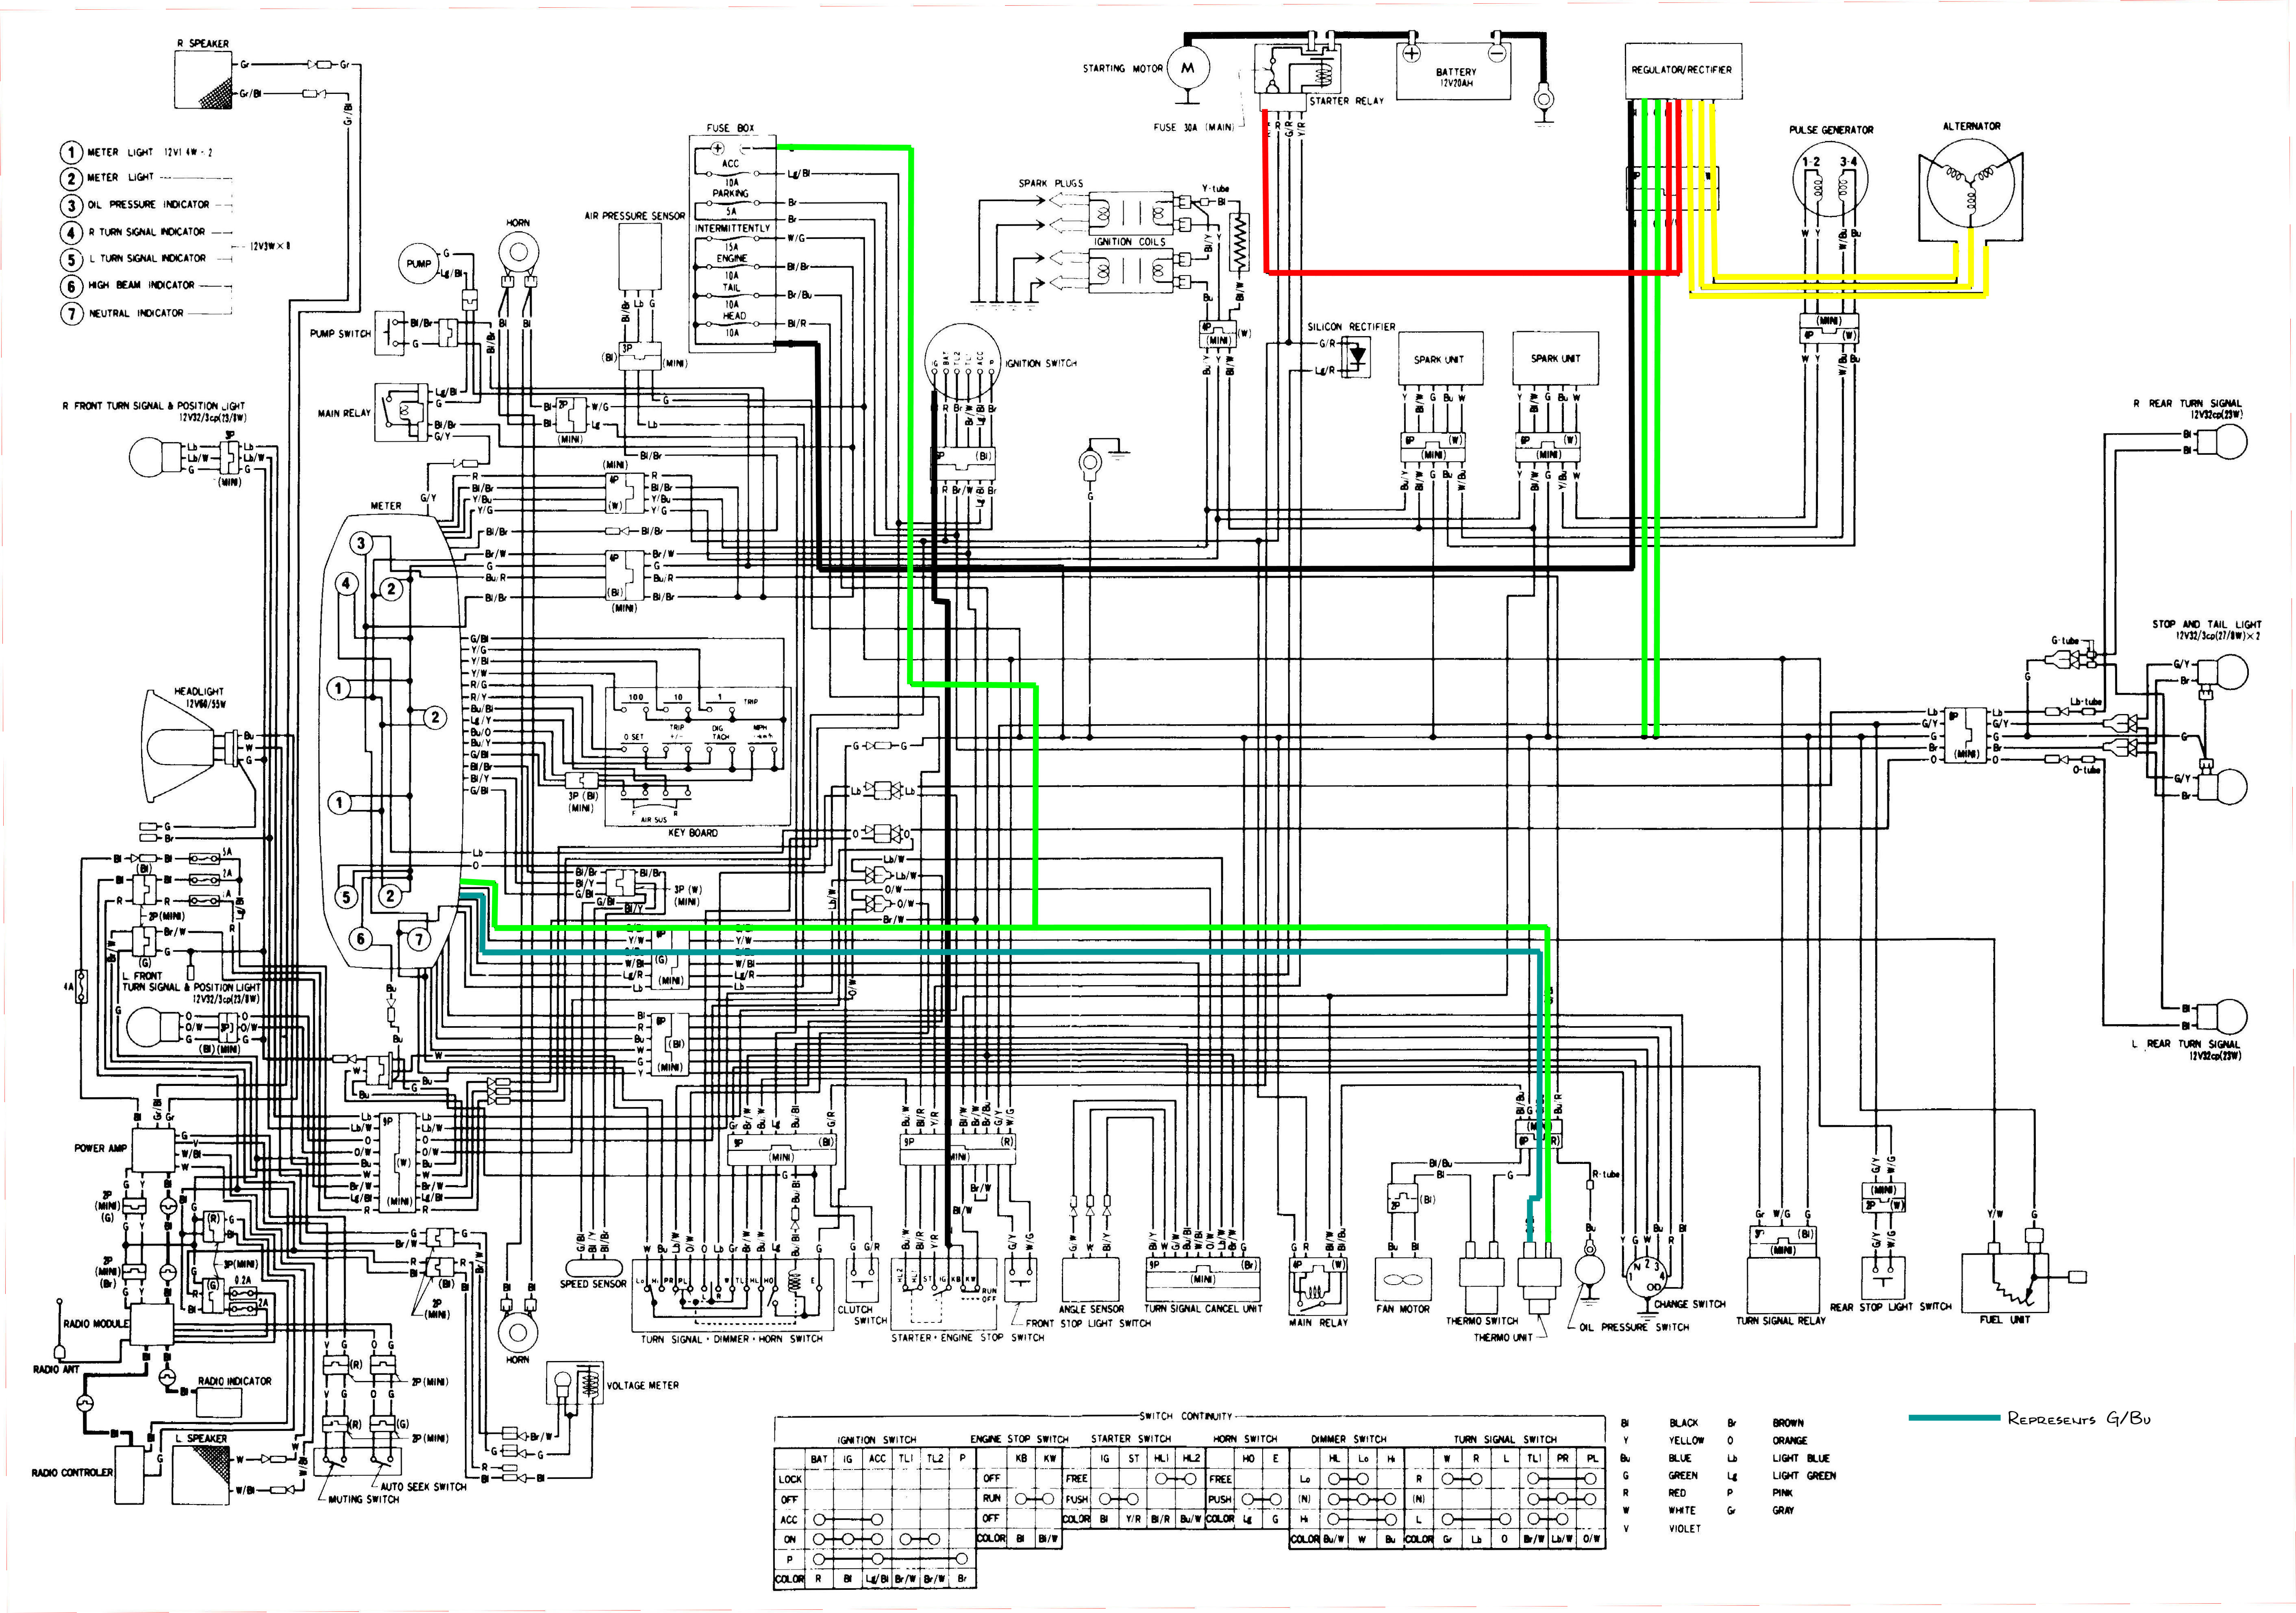 97 Honda Fuel System Wiring Diagram Auto Electrical Cbr900rr Cooling